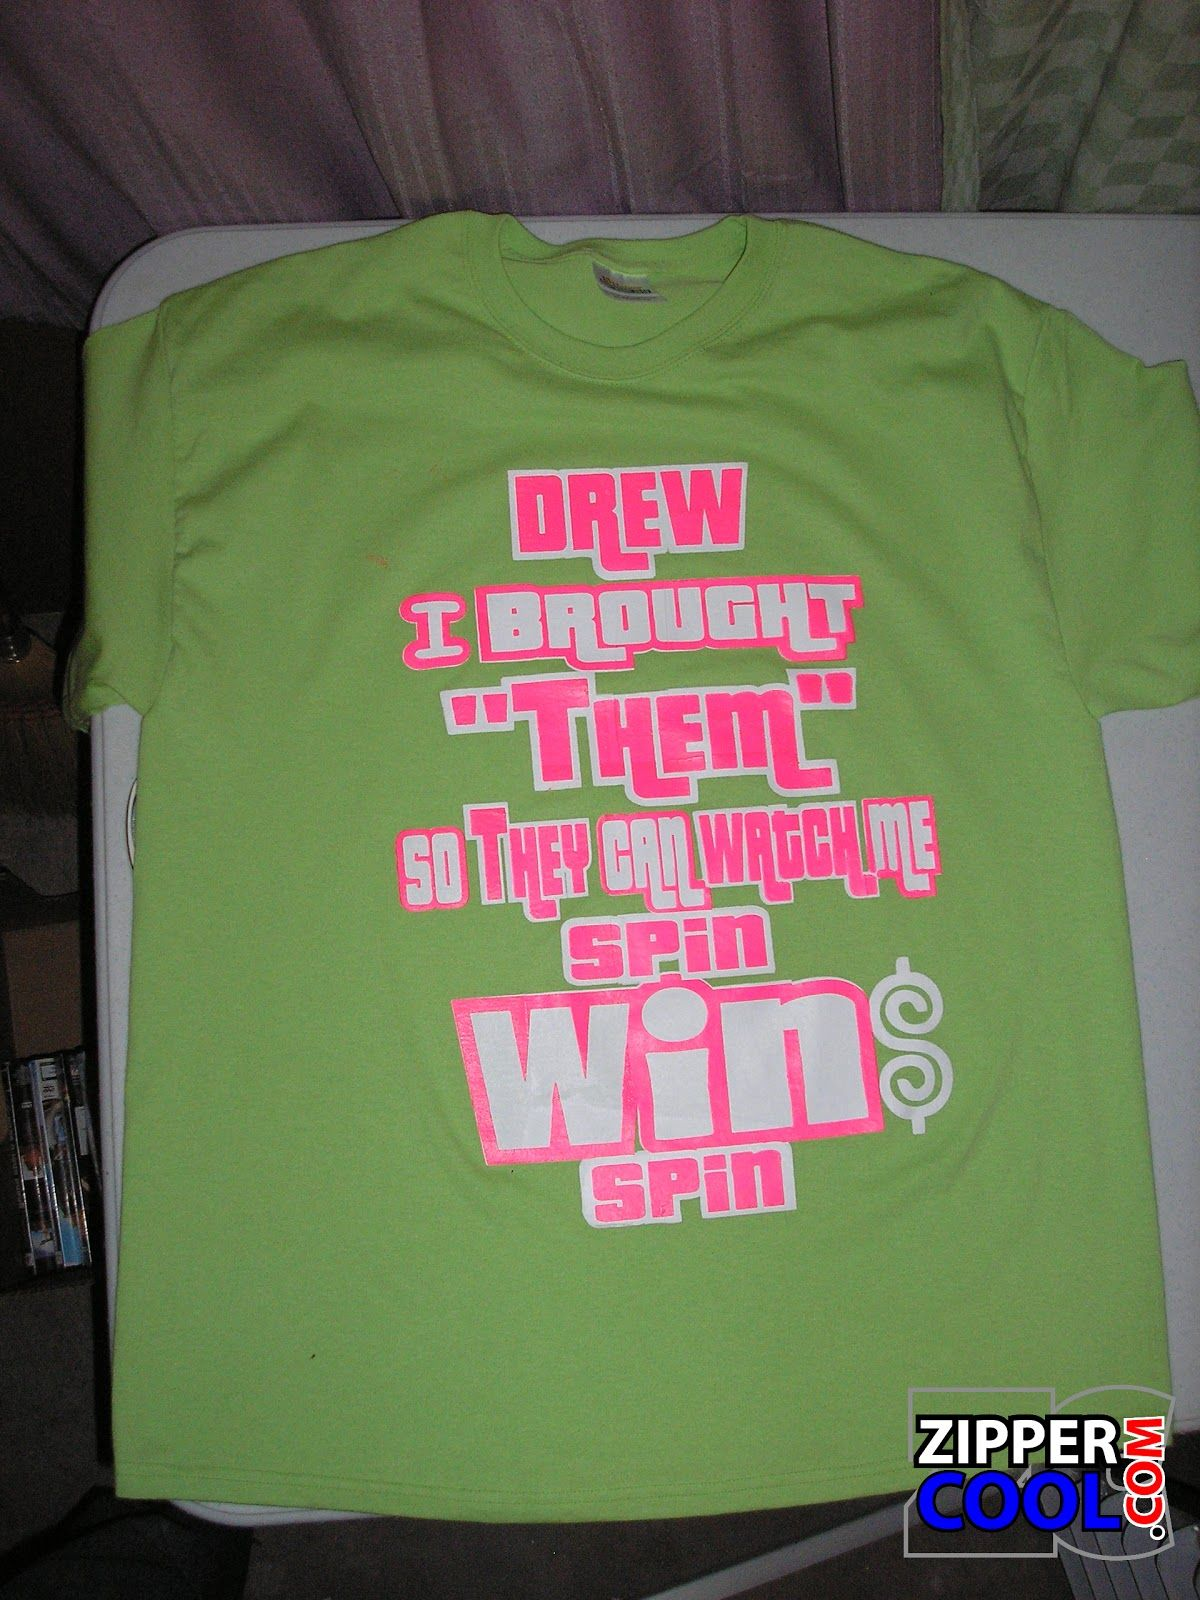 3fadc7f6 Image result for price is right shirt ideas | Price is Right Shirts ...